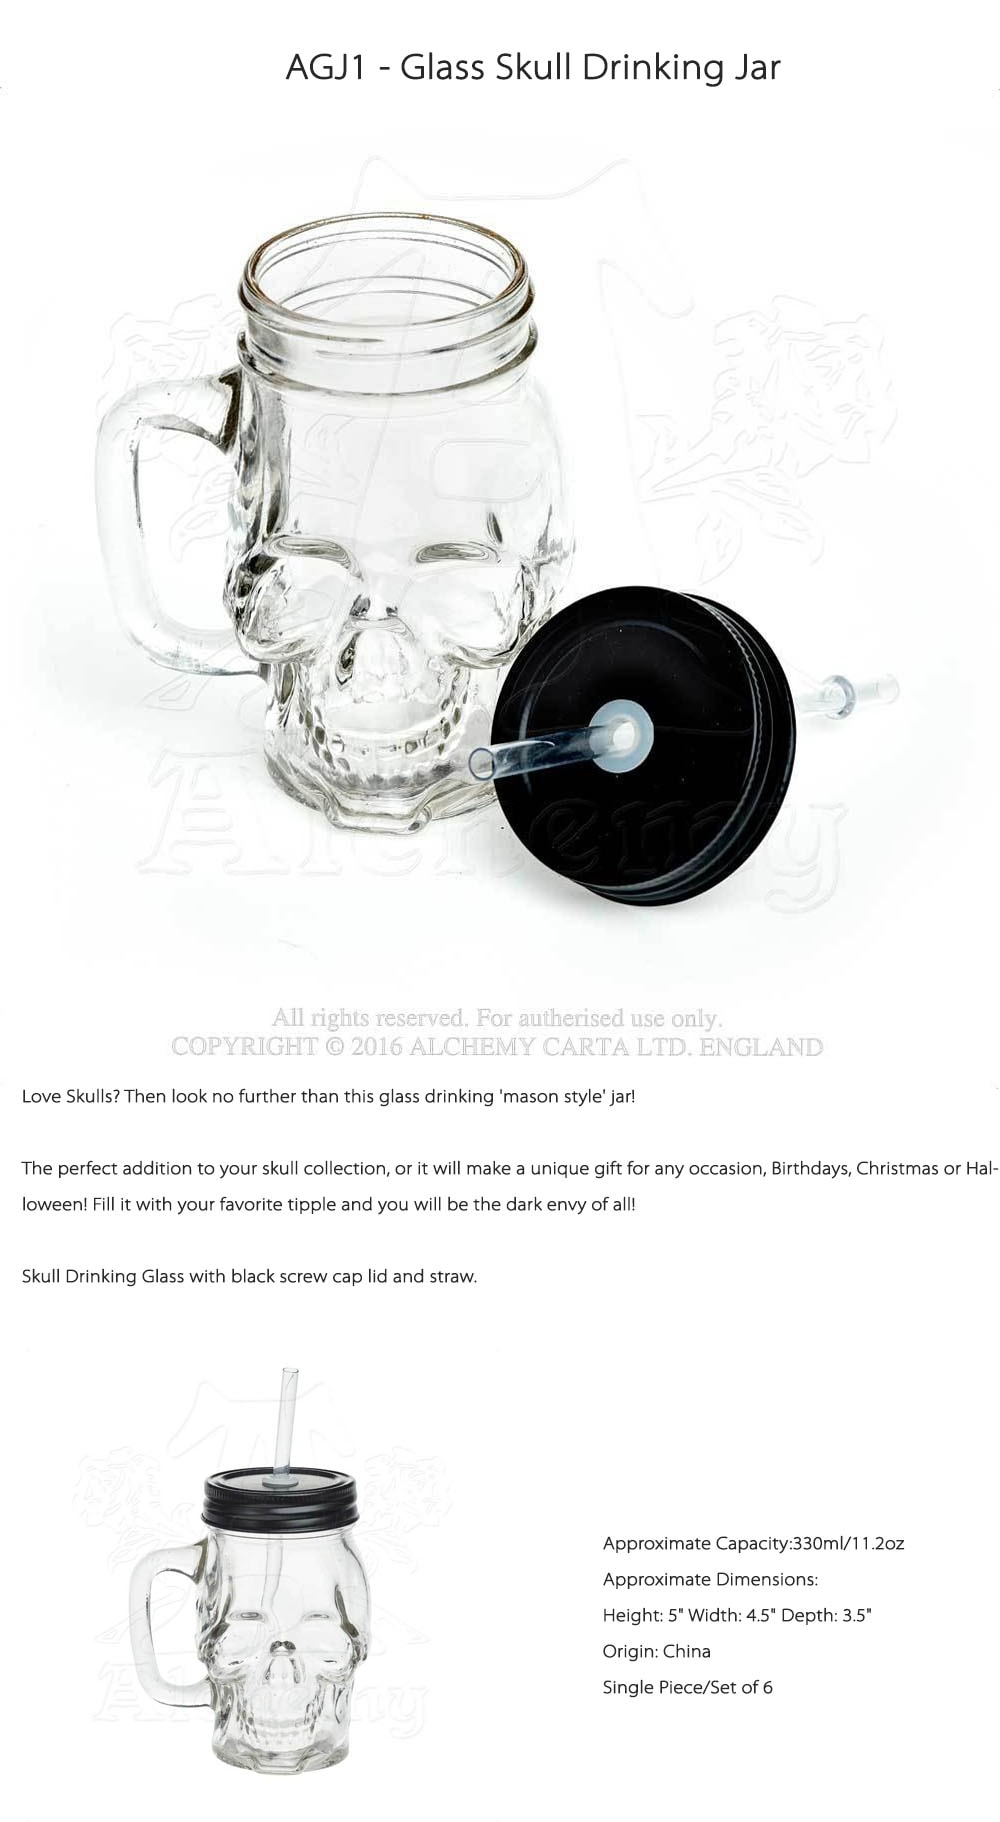 Glass Skull Drinking Jar Do You Love Skulls?